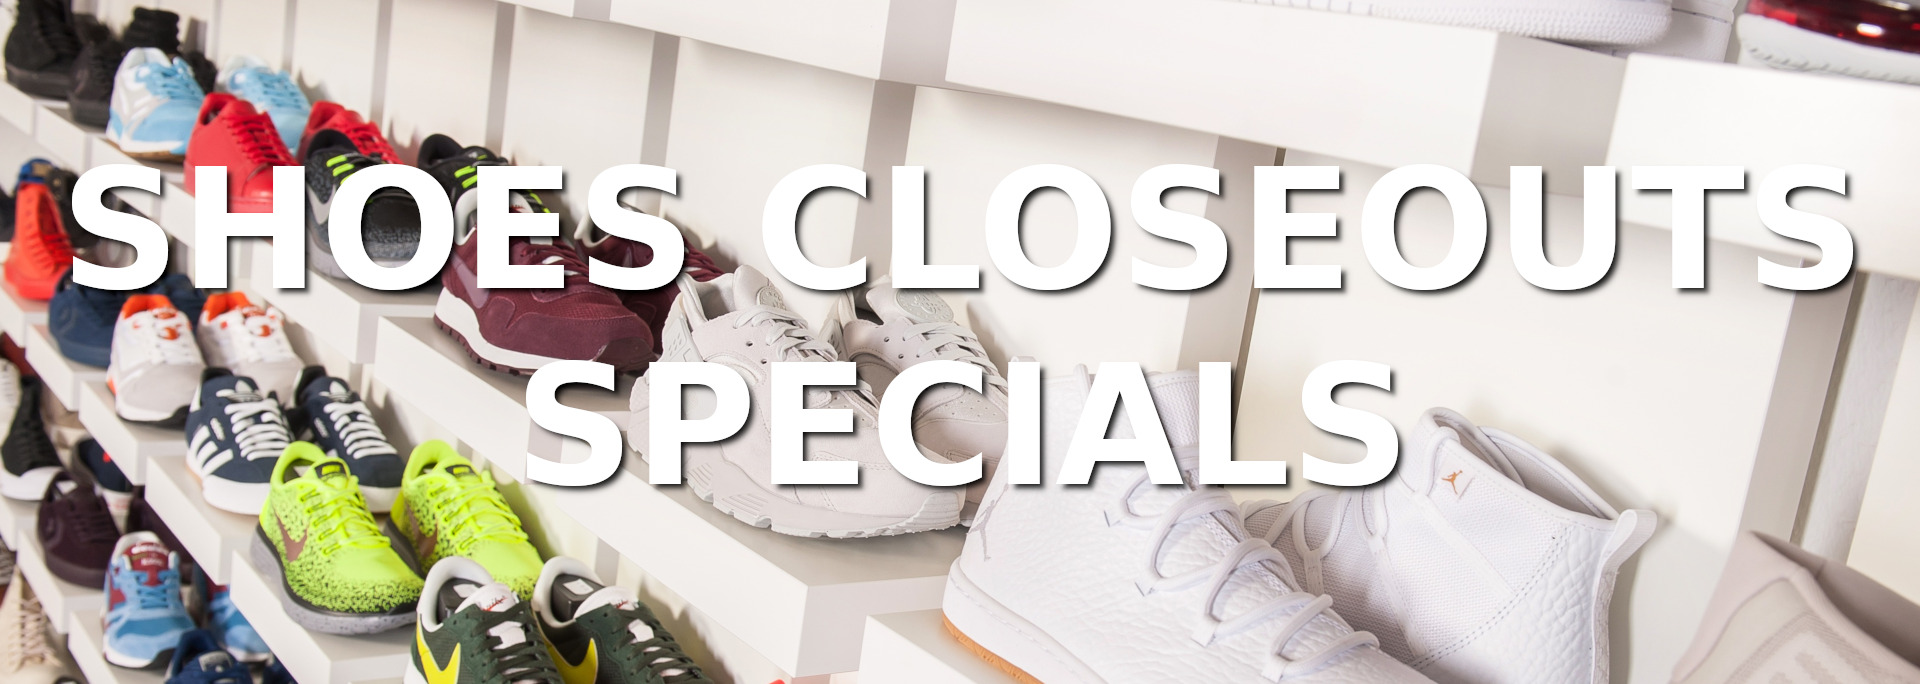 Closeouts World | Home | Closeouts Merchandise and Speicals